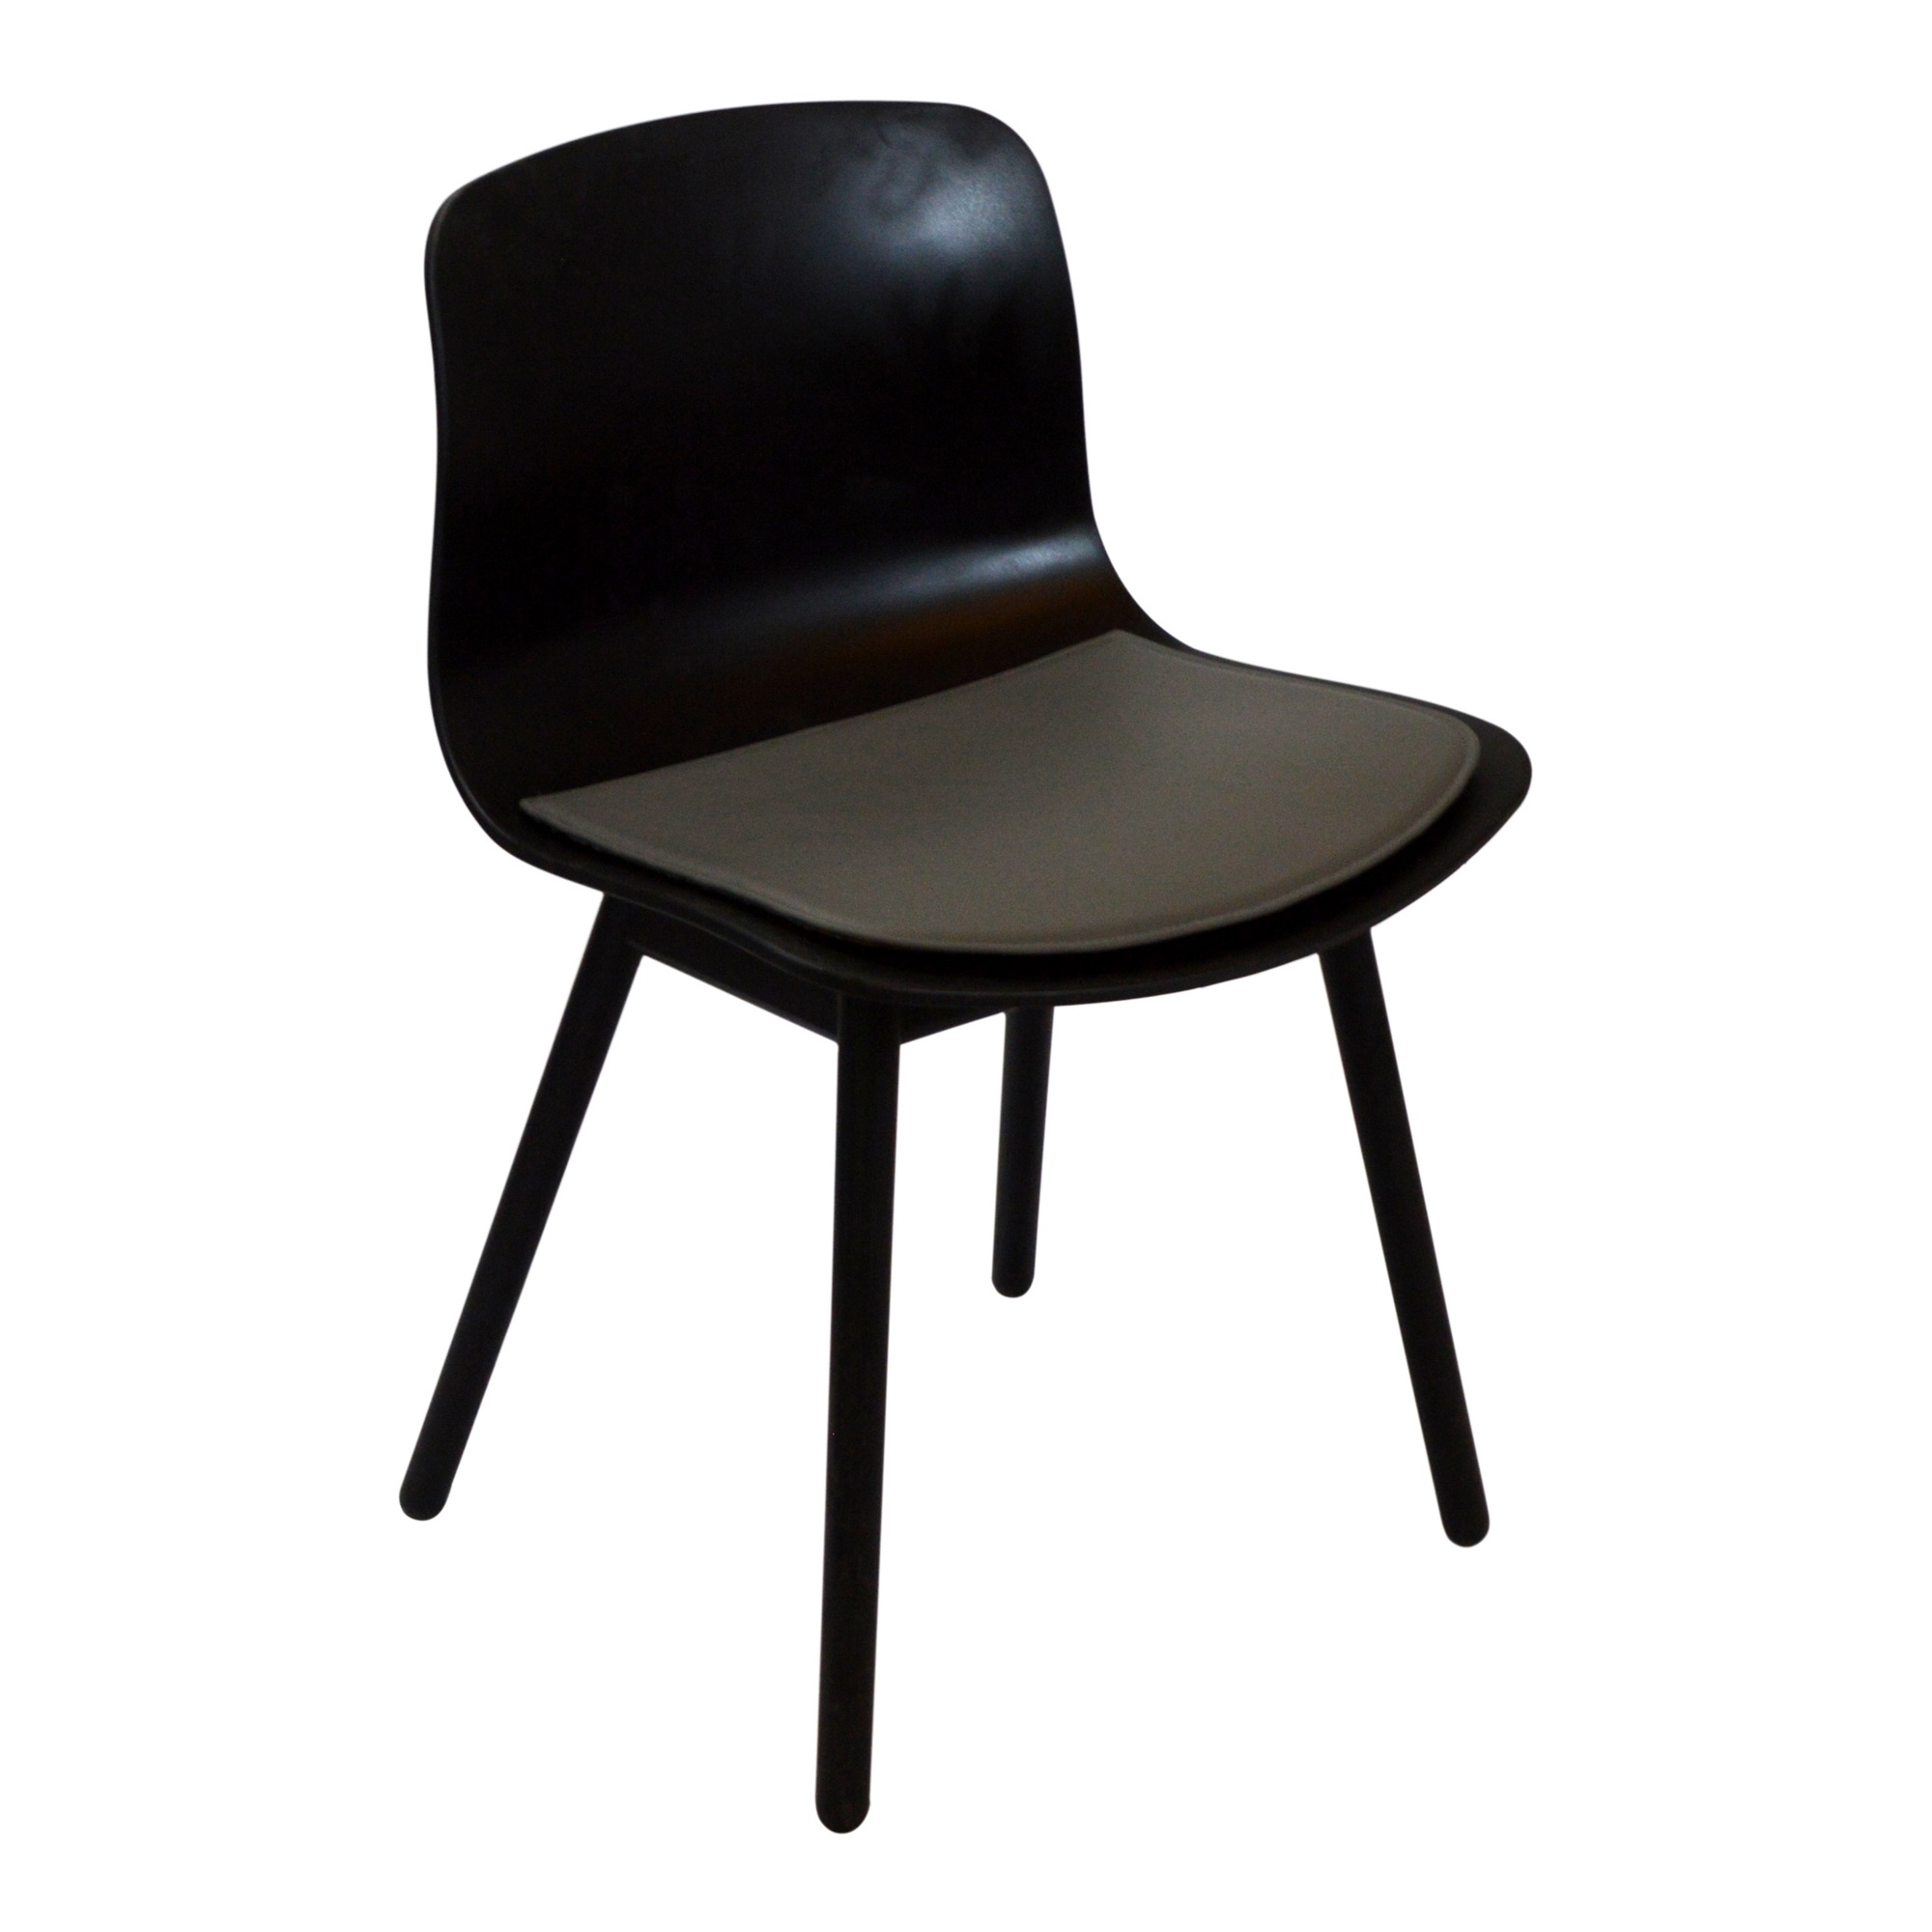 Lux AAC 12 Chair LUXURY cushion in Elmo Baltique Leather